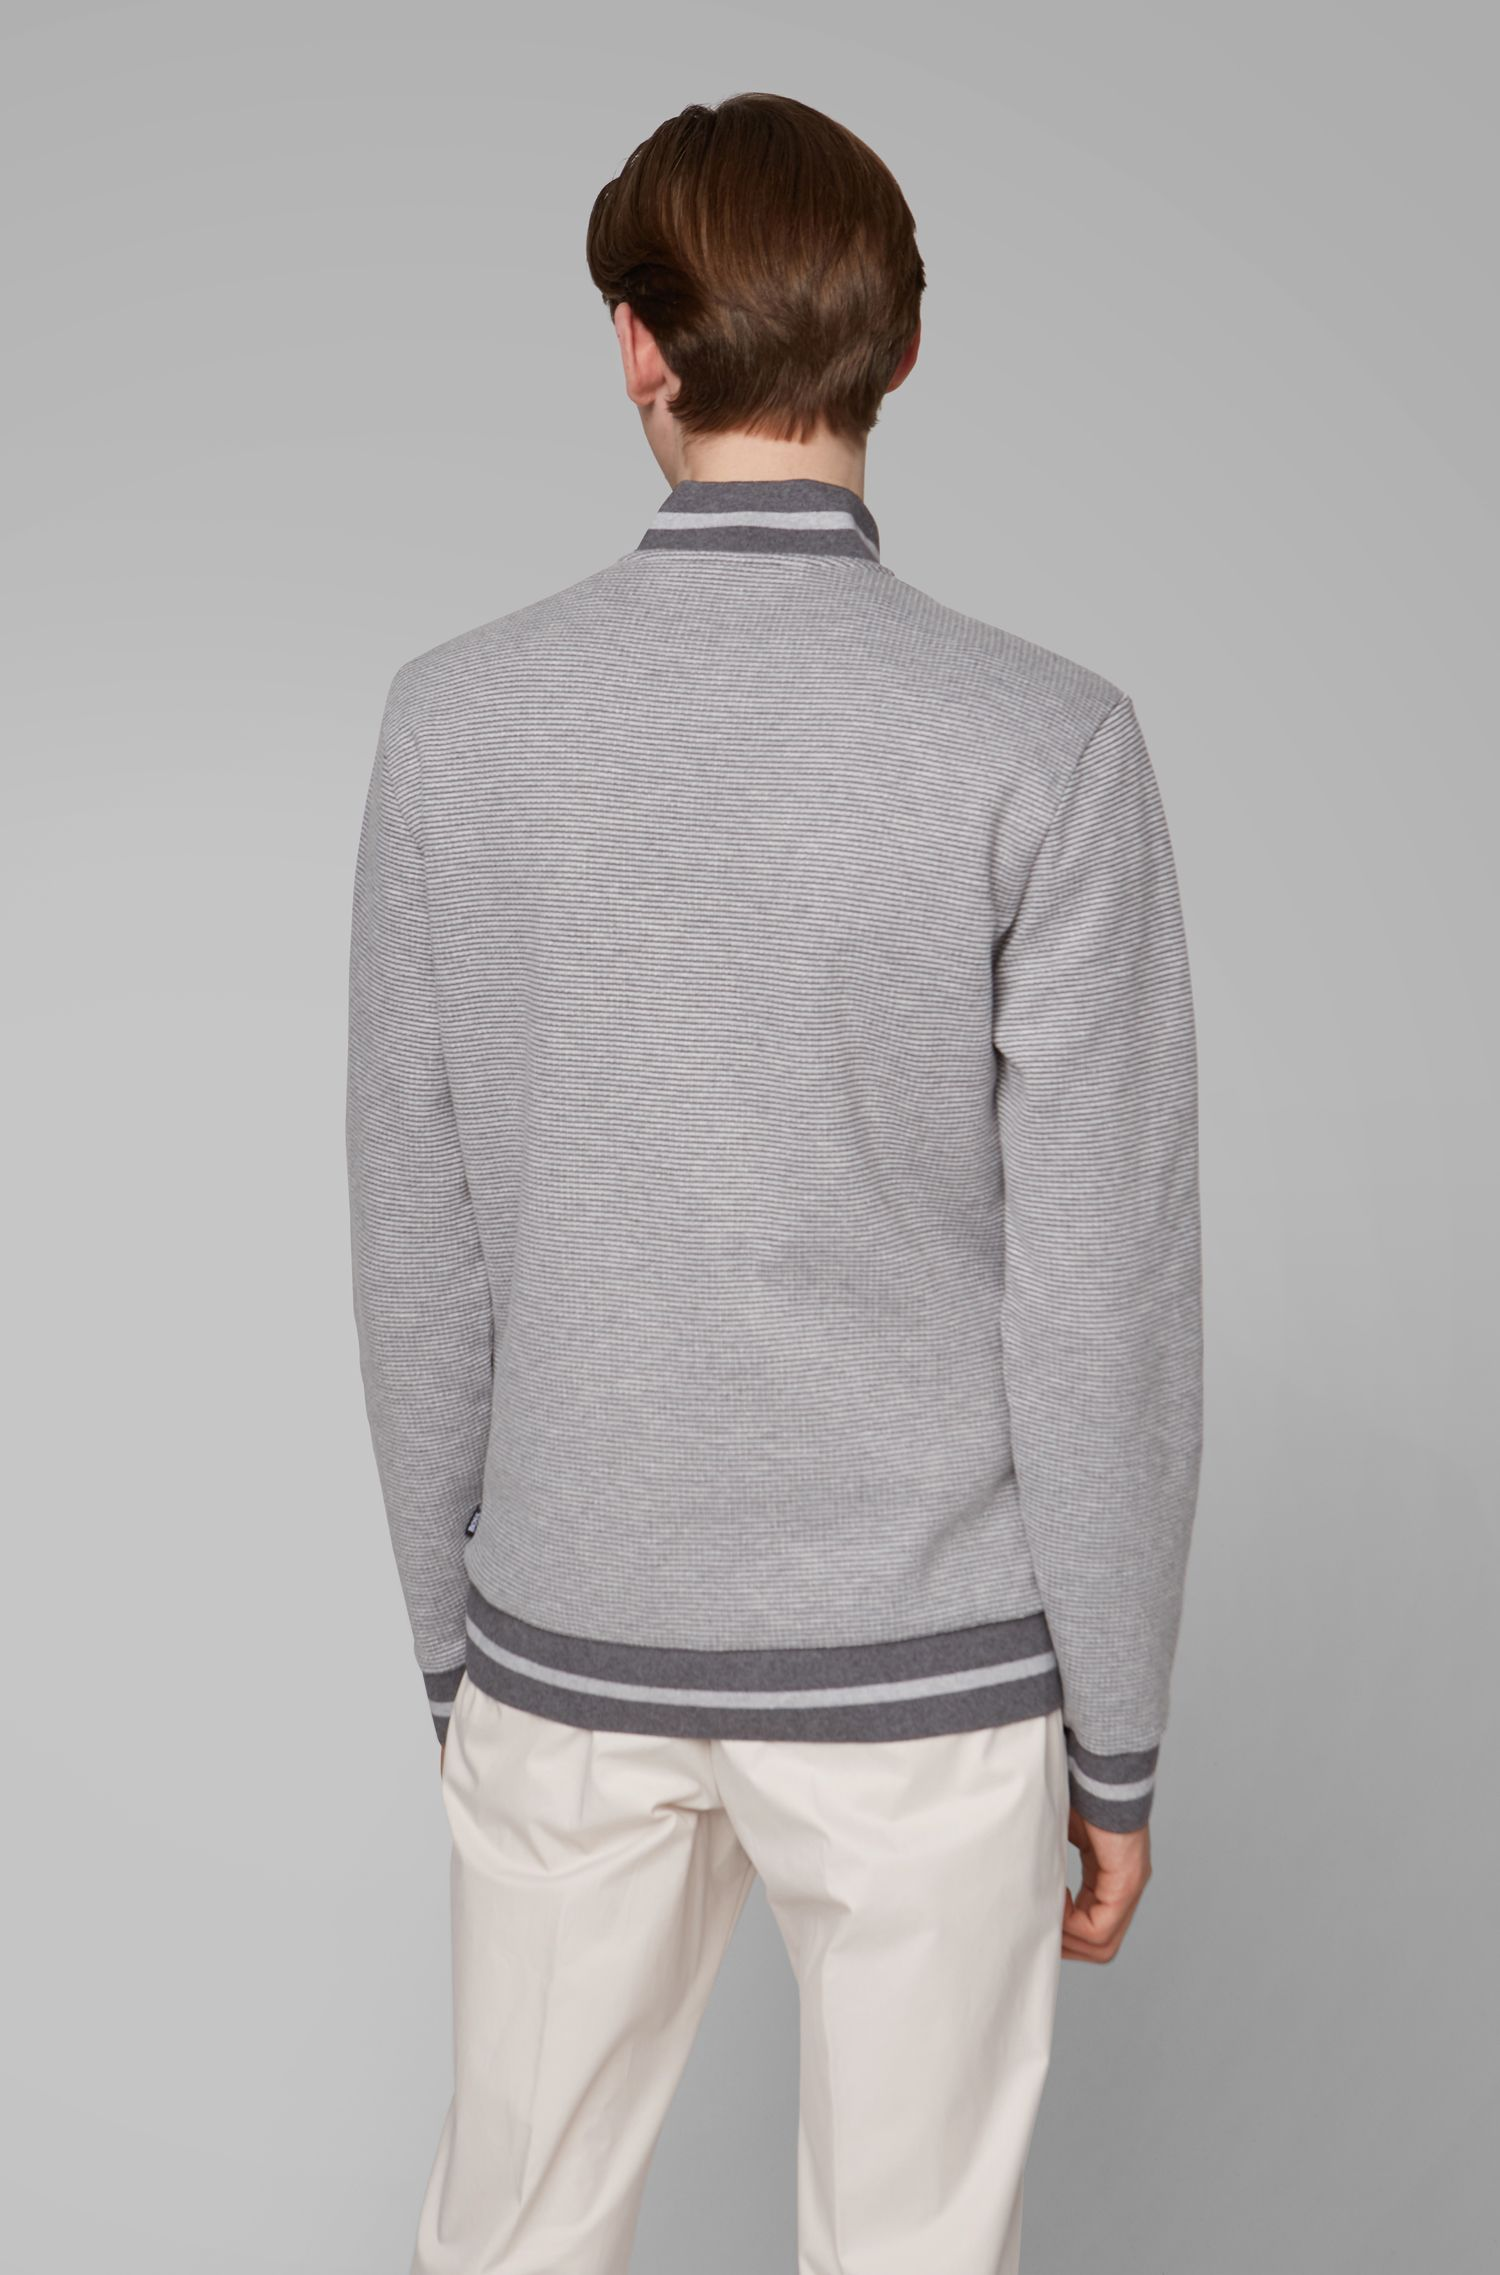 Zip-neck sweatshirt with two-tone melange structure, Grey